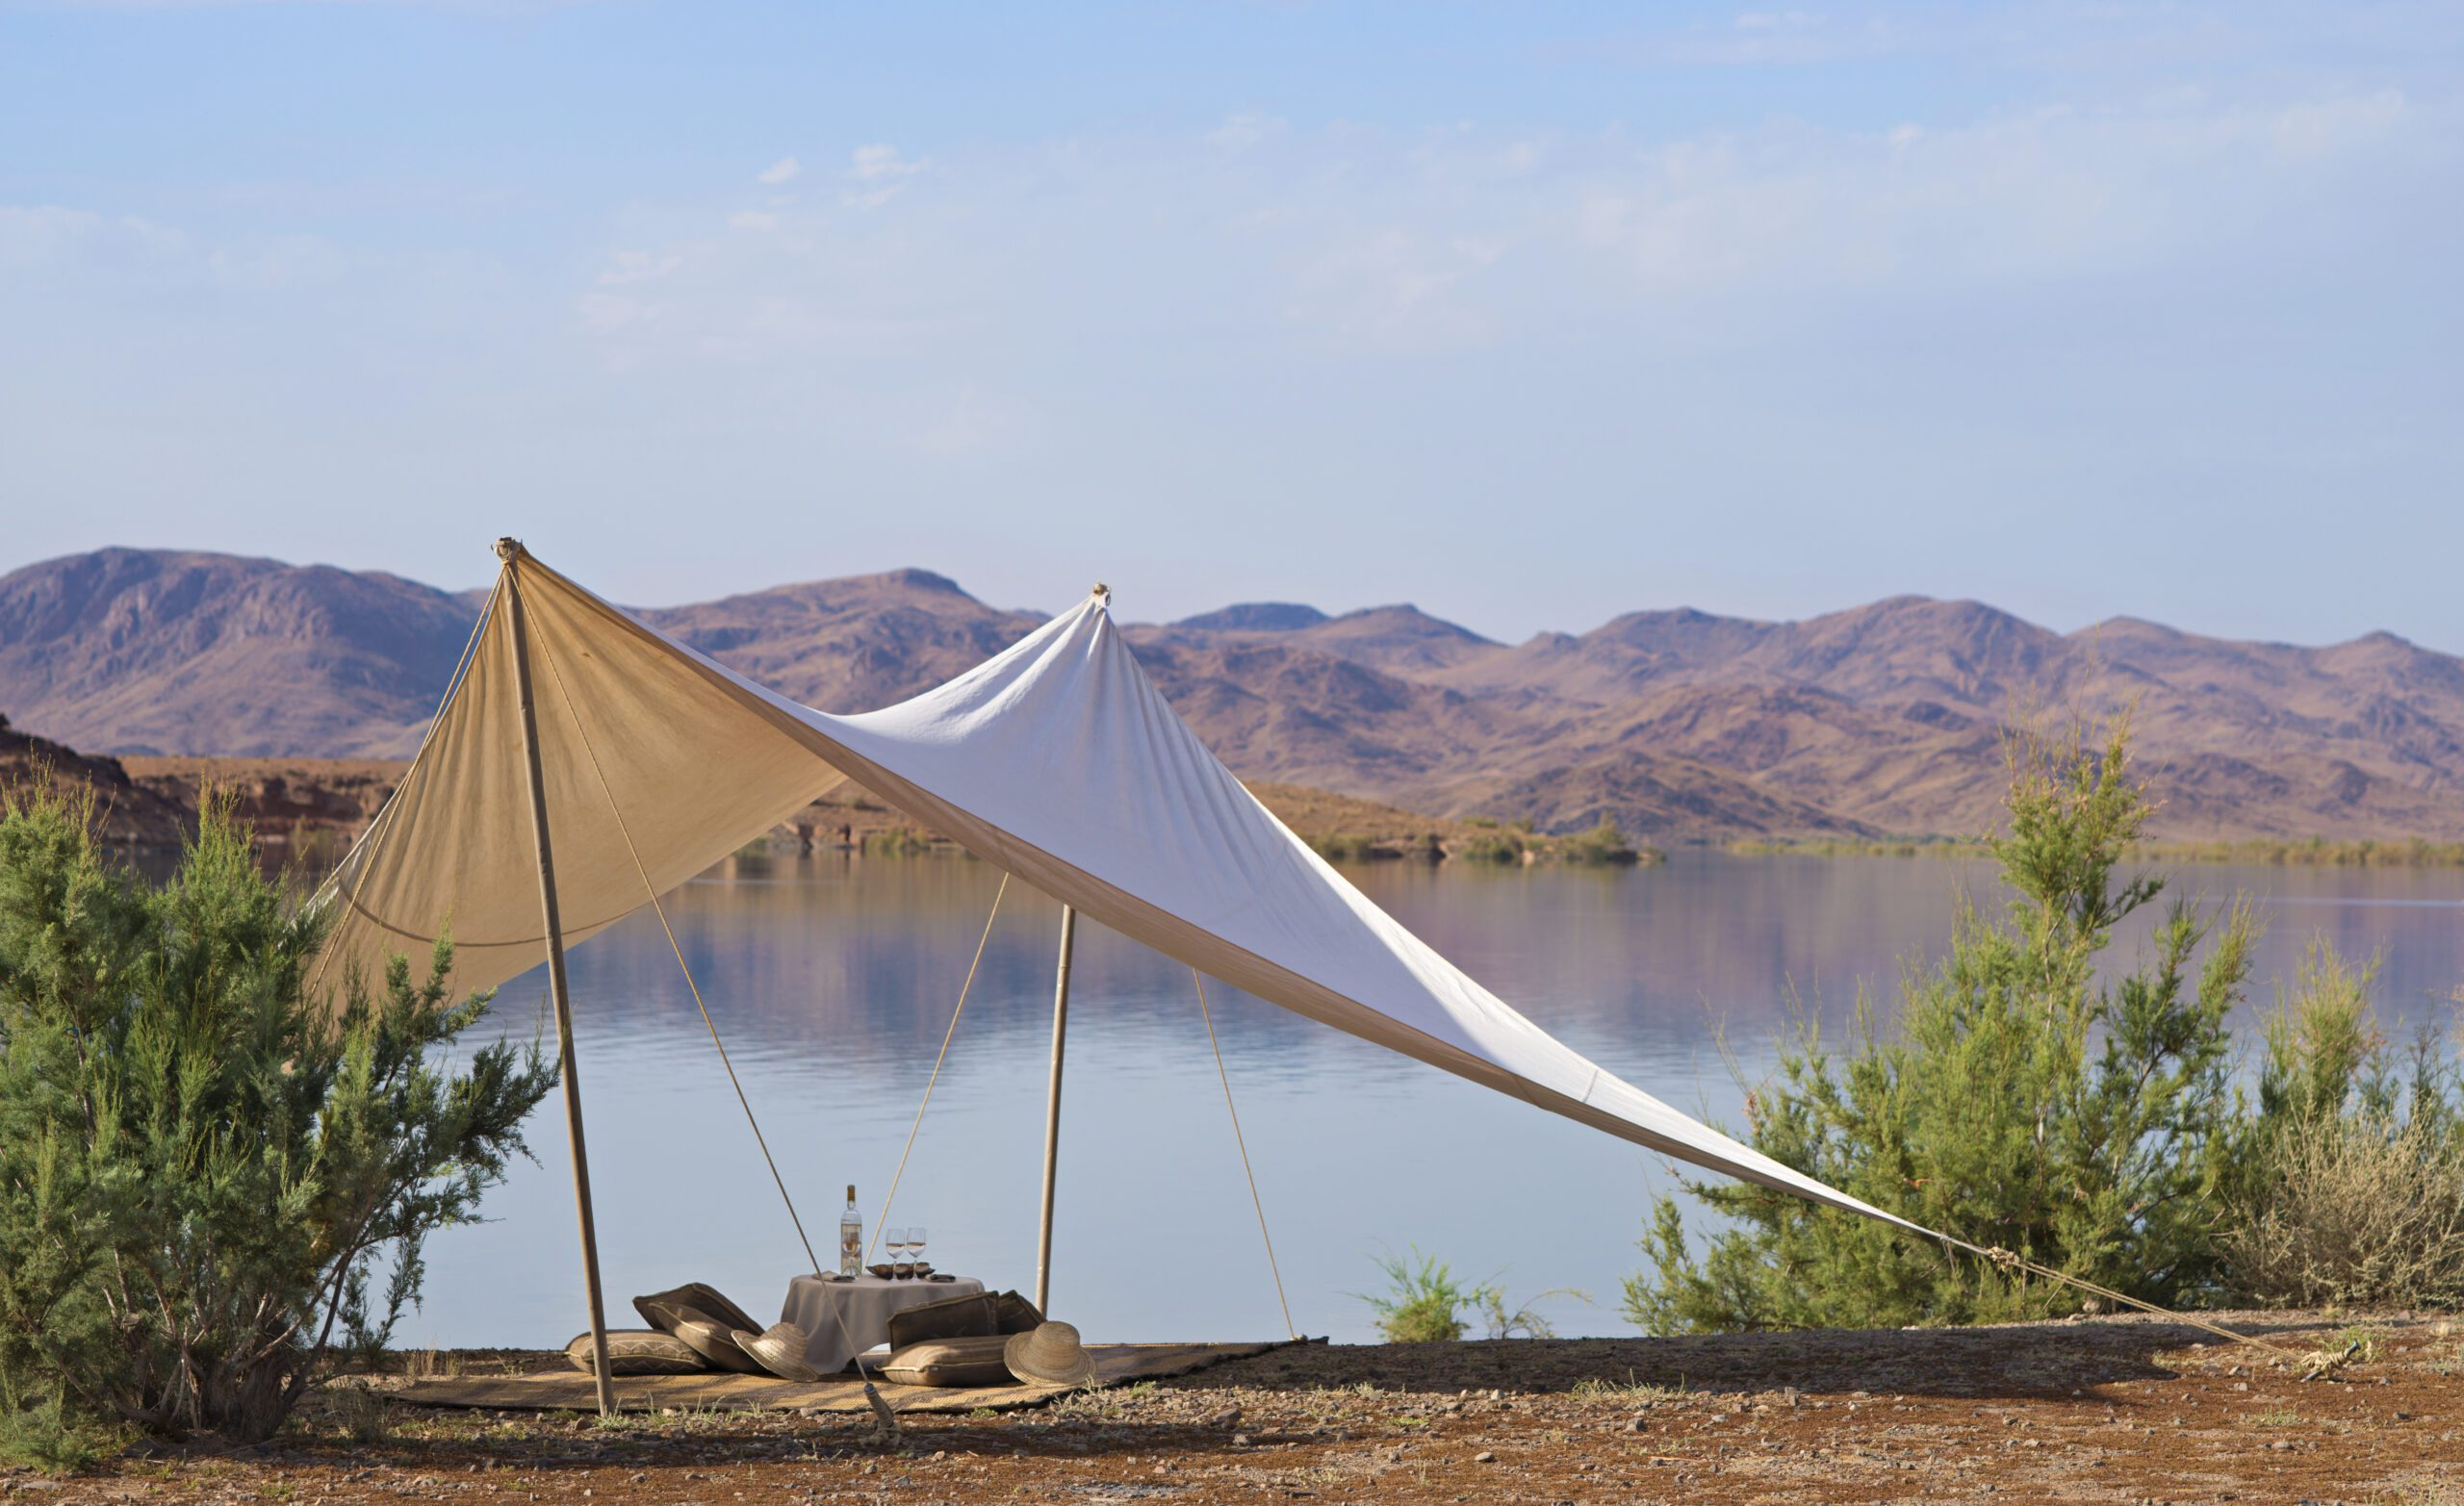 white cloth making a tent with bean bag chairs overlook a body of water and mountains at Dah Ahlam